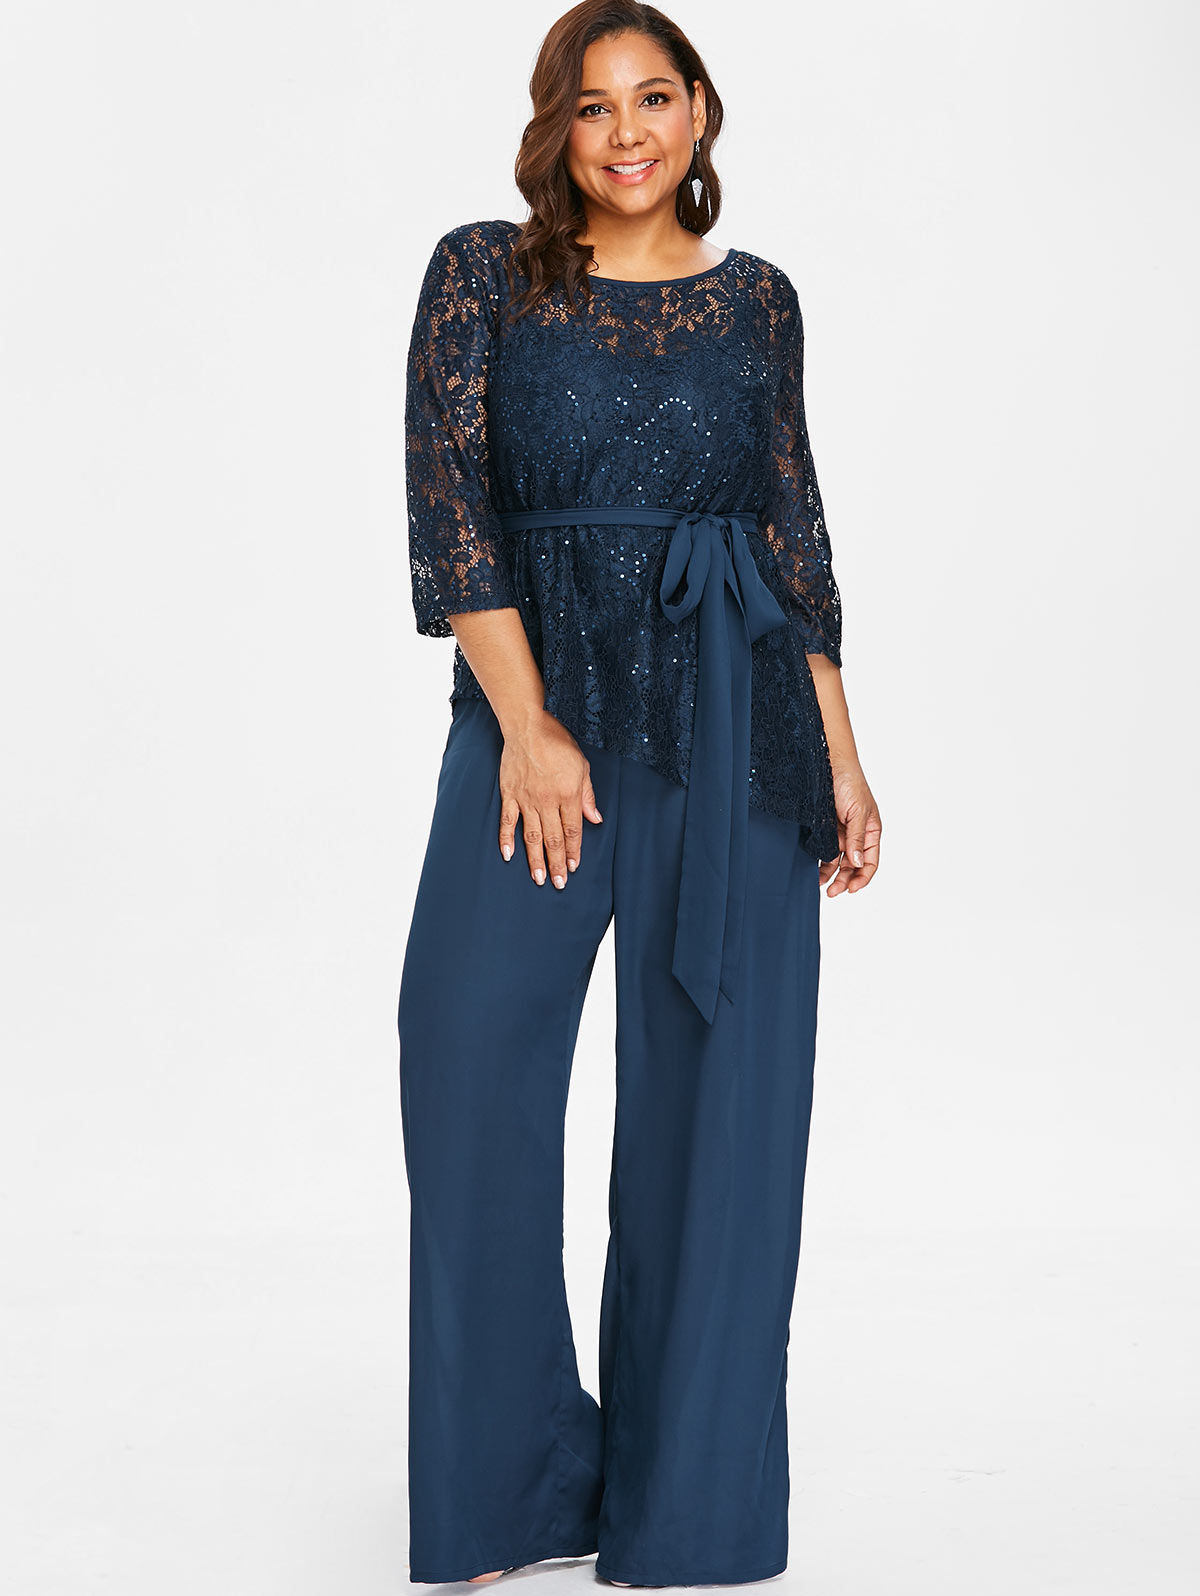 Wipalo Women Plus Size 5XL Wide Leg Jumpsuit With Lace Blouse Casual Solid  Belted Two Piece Palazzo Jumpsuit Ladies Set Big Size-in Jumpsuits from  Women s ... 7ad848bf0891